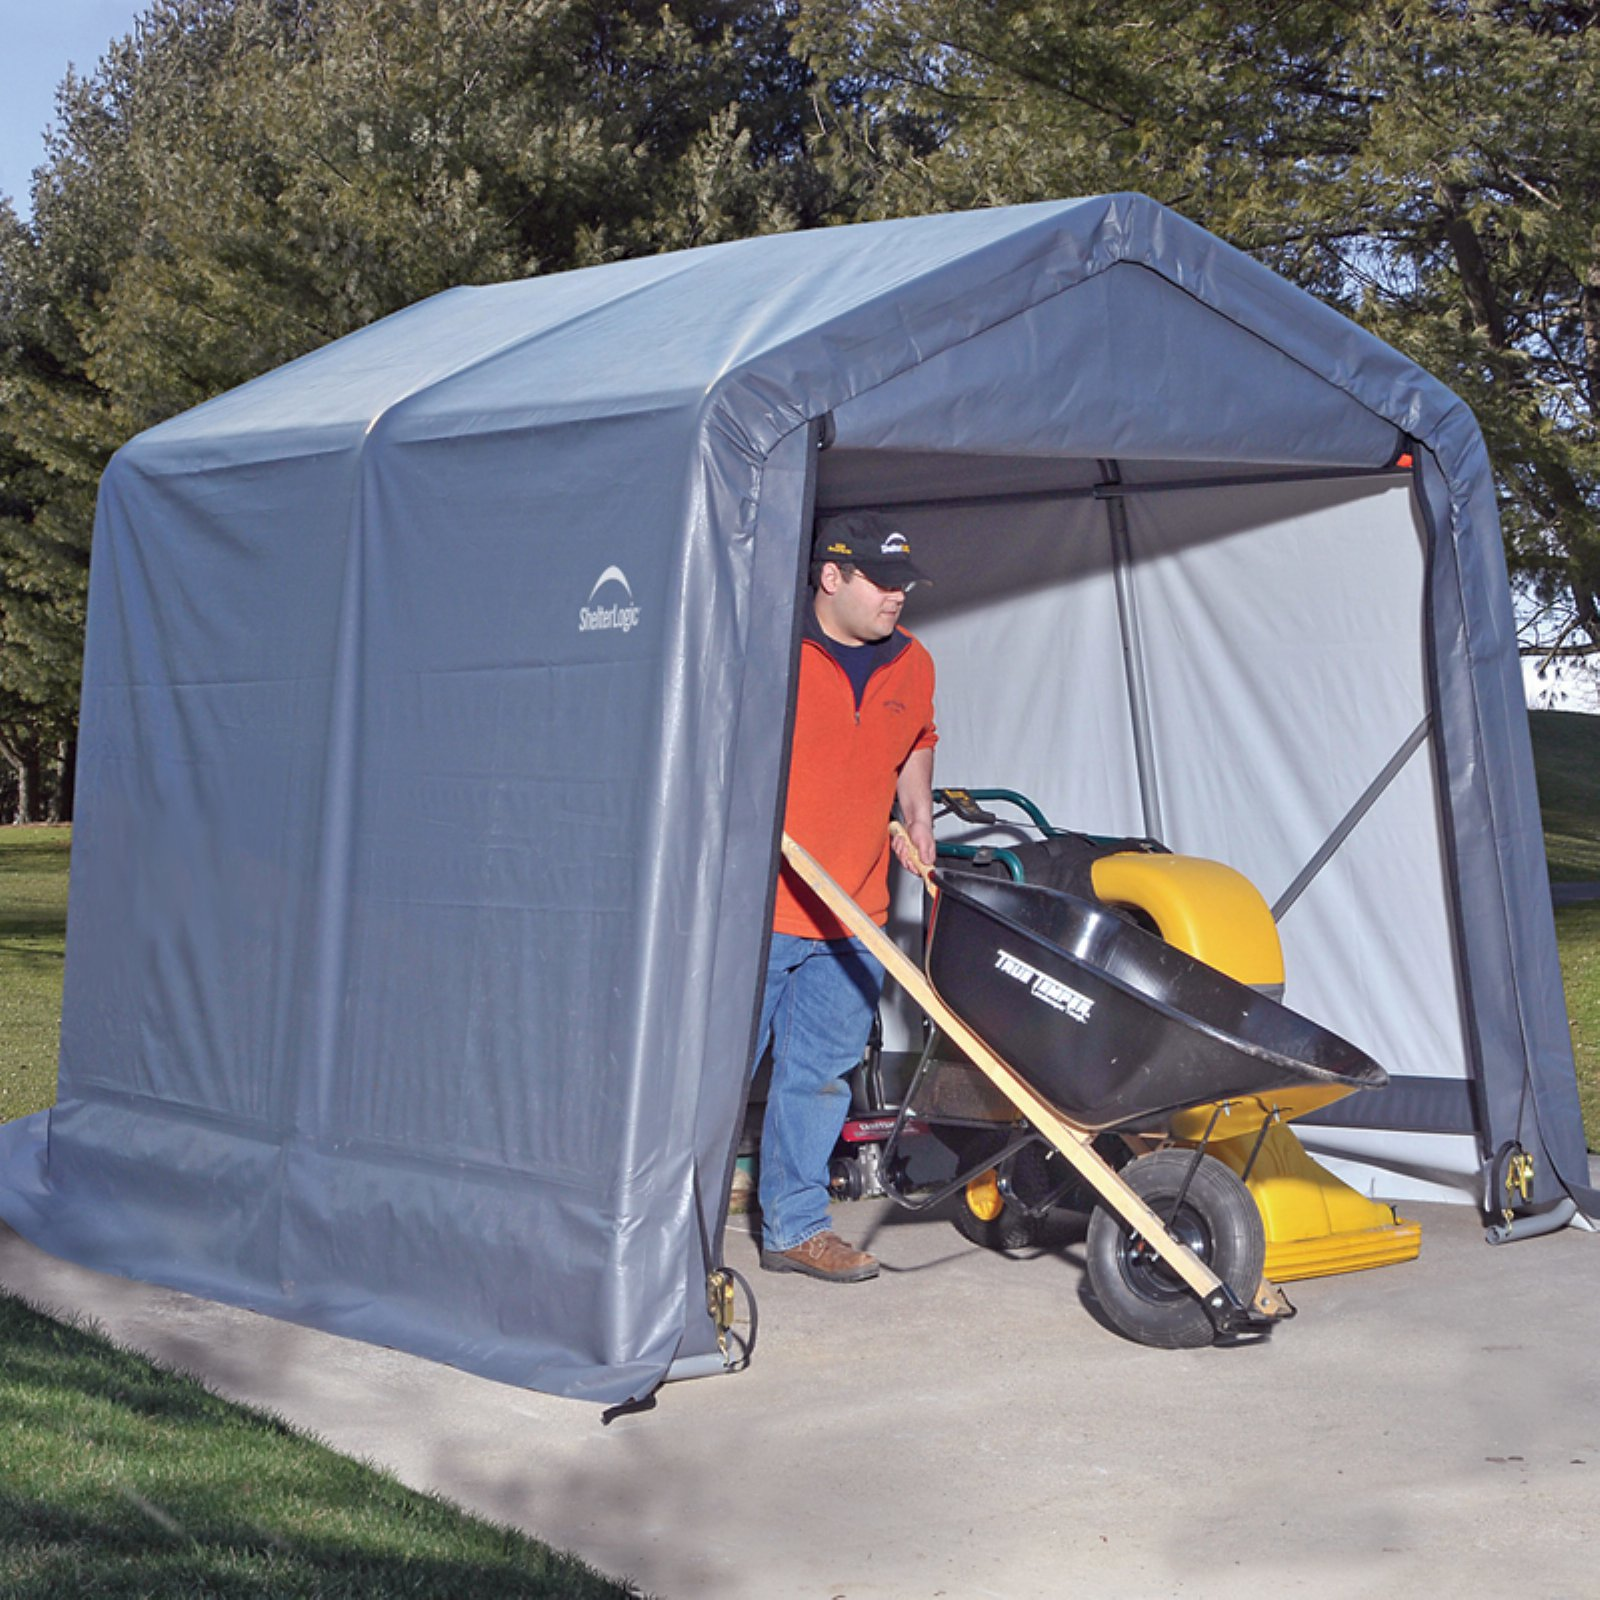 8' x 16' x 8' Peak Style Shelter, Green